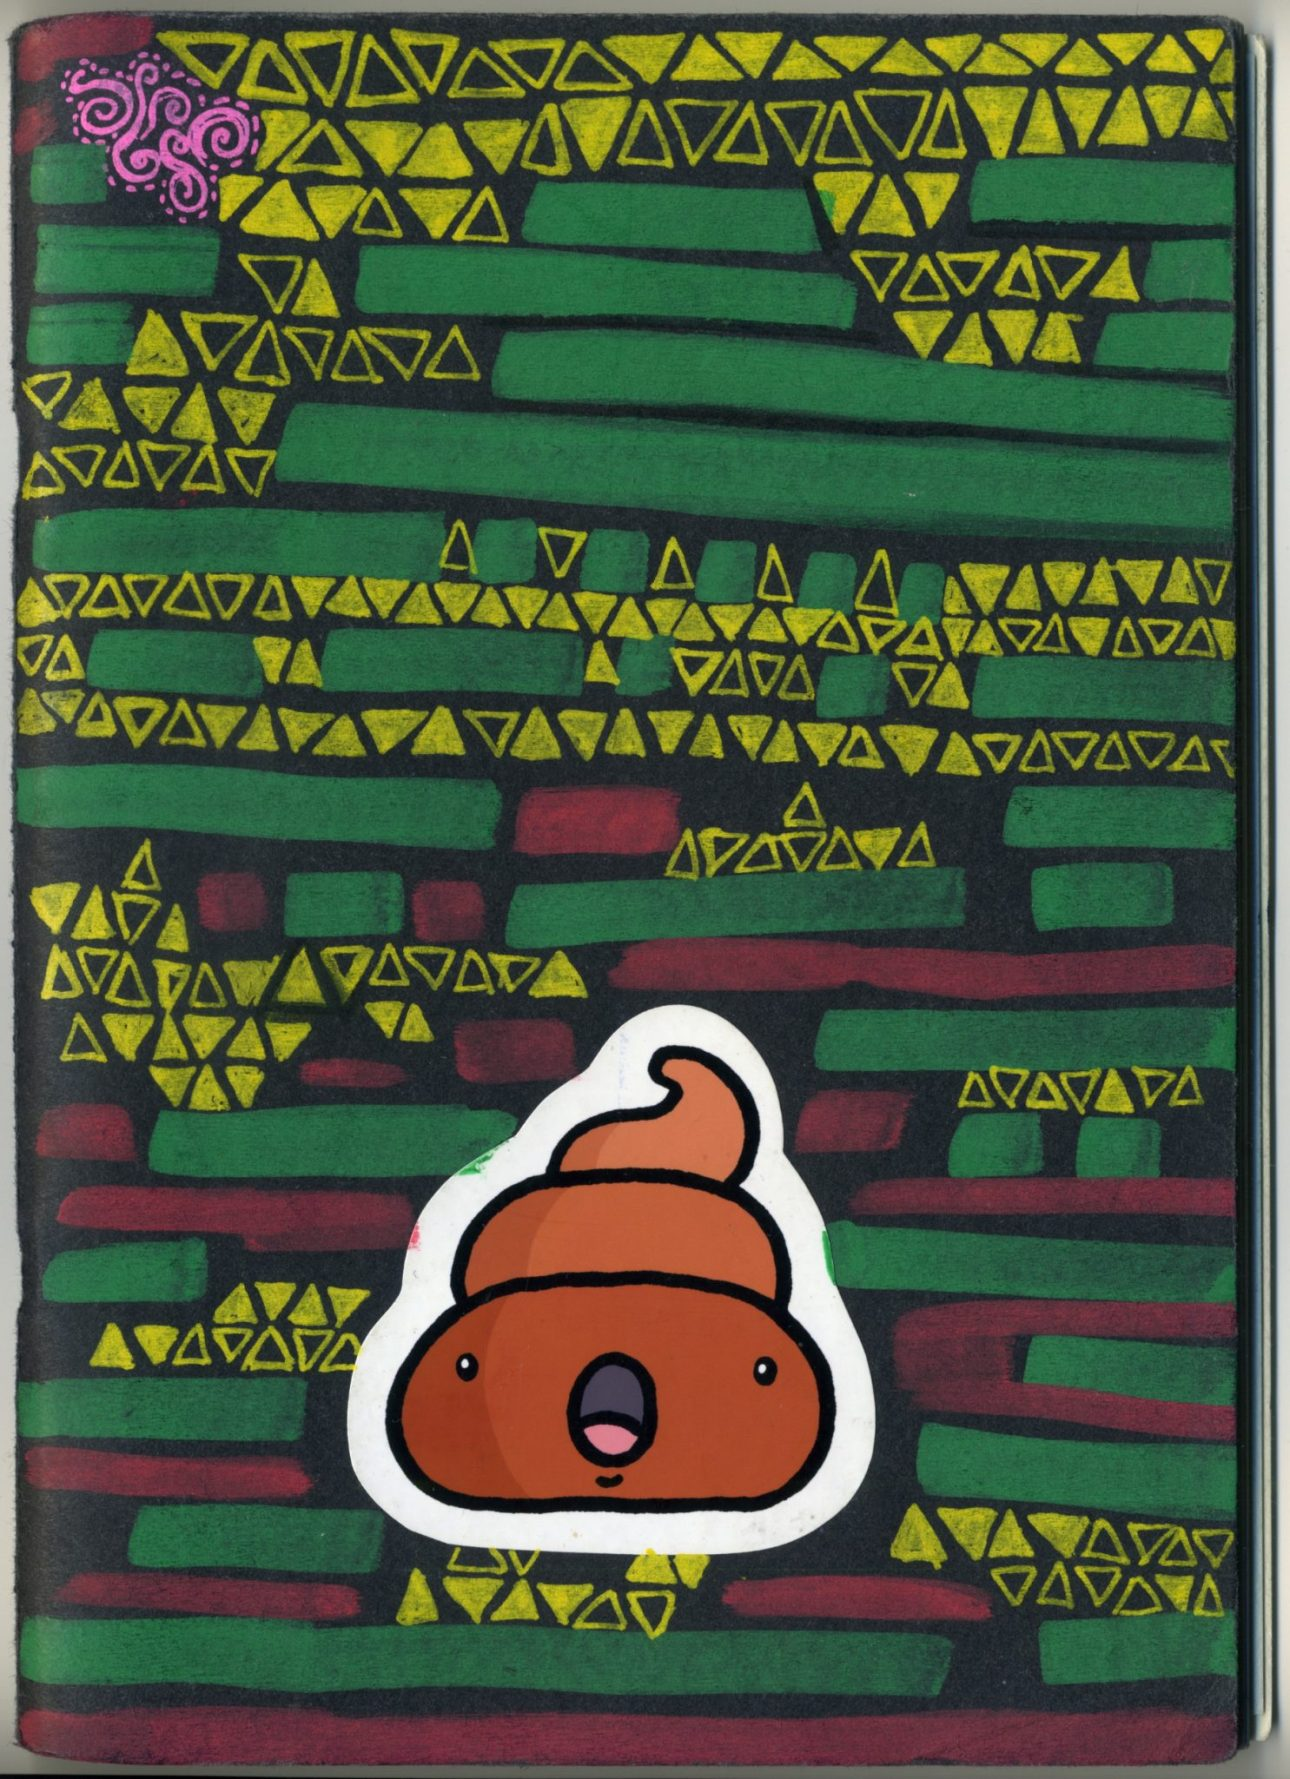 The front cover of my 2015 - 2016 sketchbook, a black cover with green, yellow and pink mark making patterns and a cute cartoon surprise poo sticker.